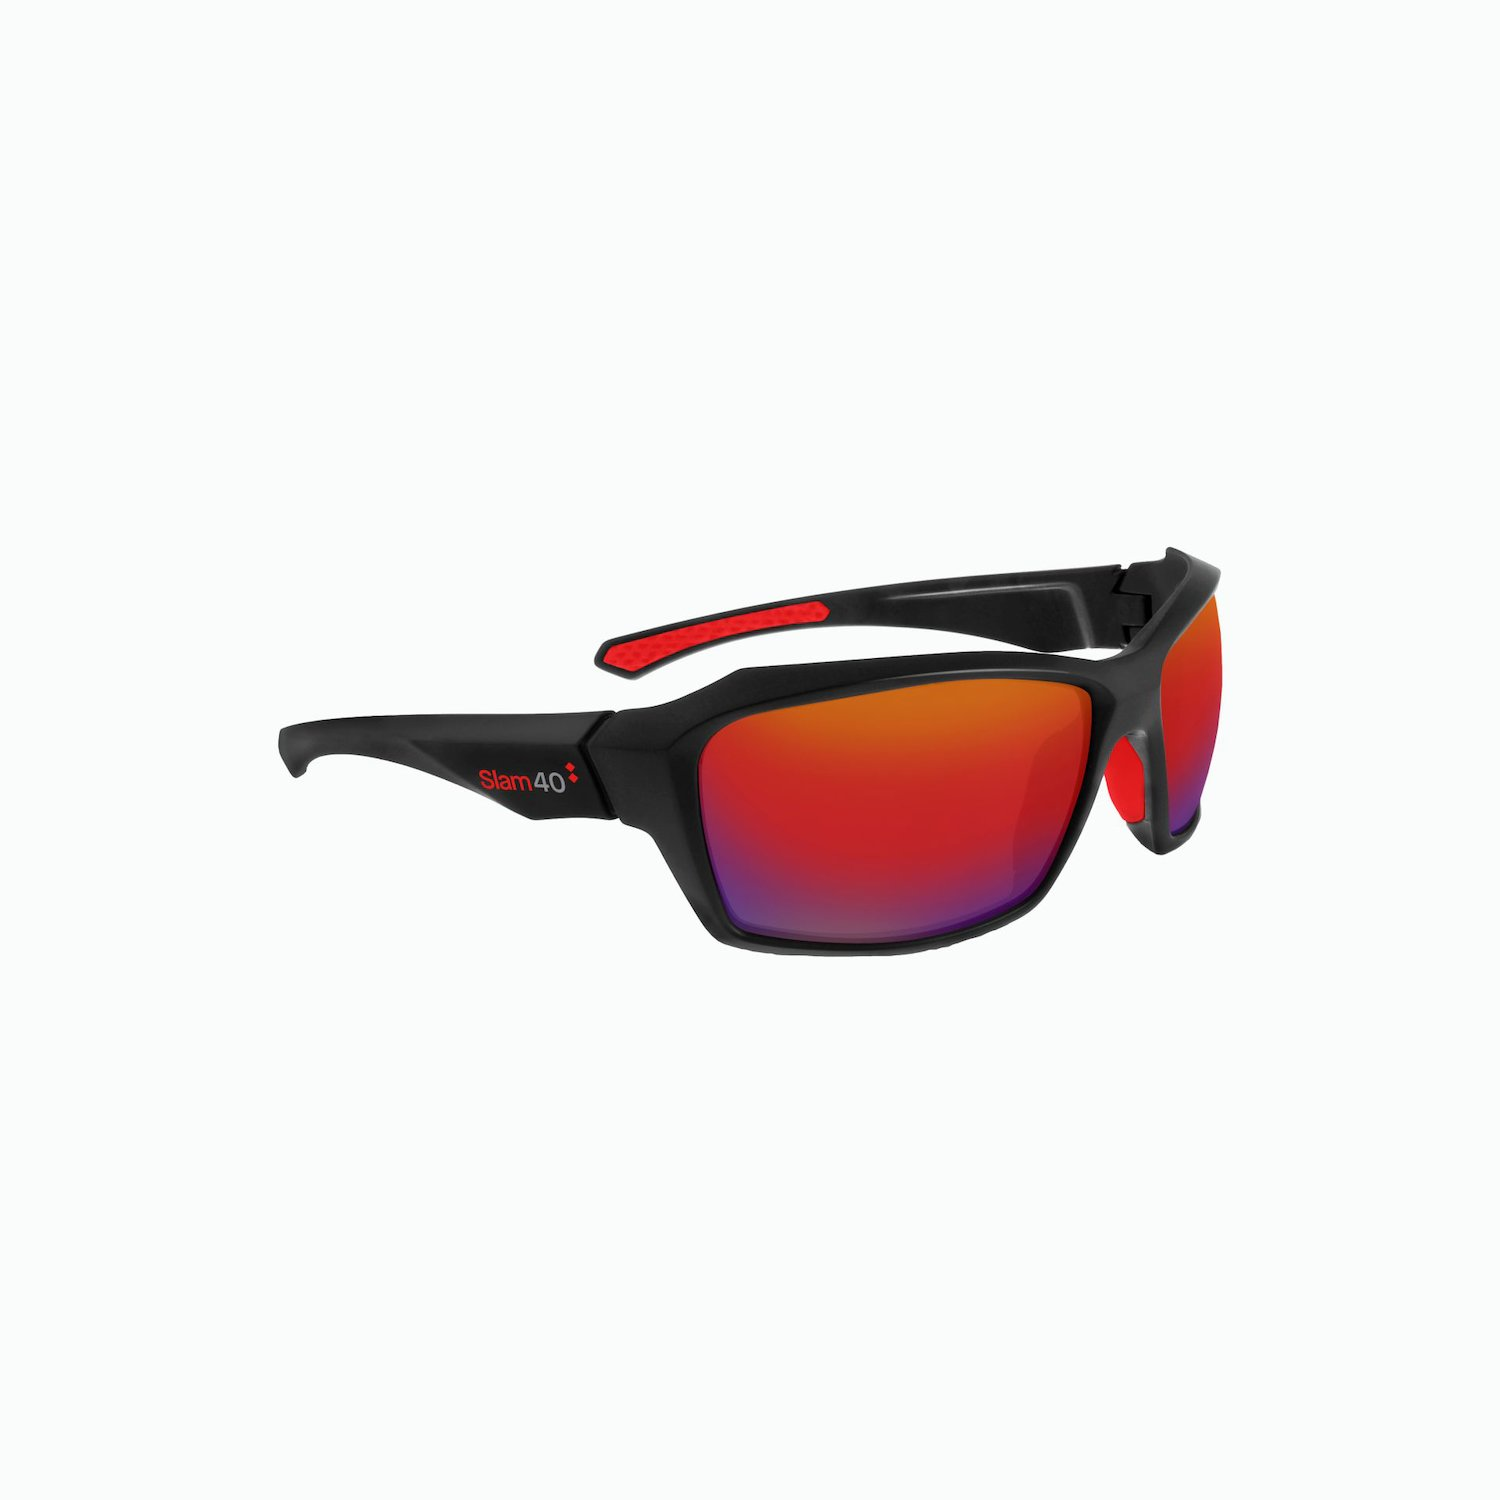 40th Sunglasses - Schwarz / Rot / Rot